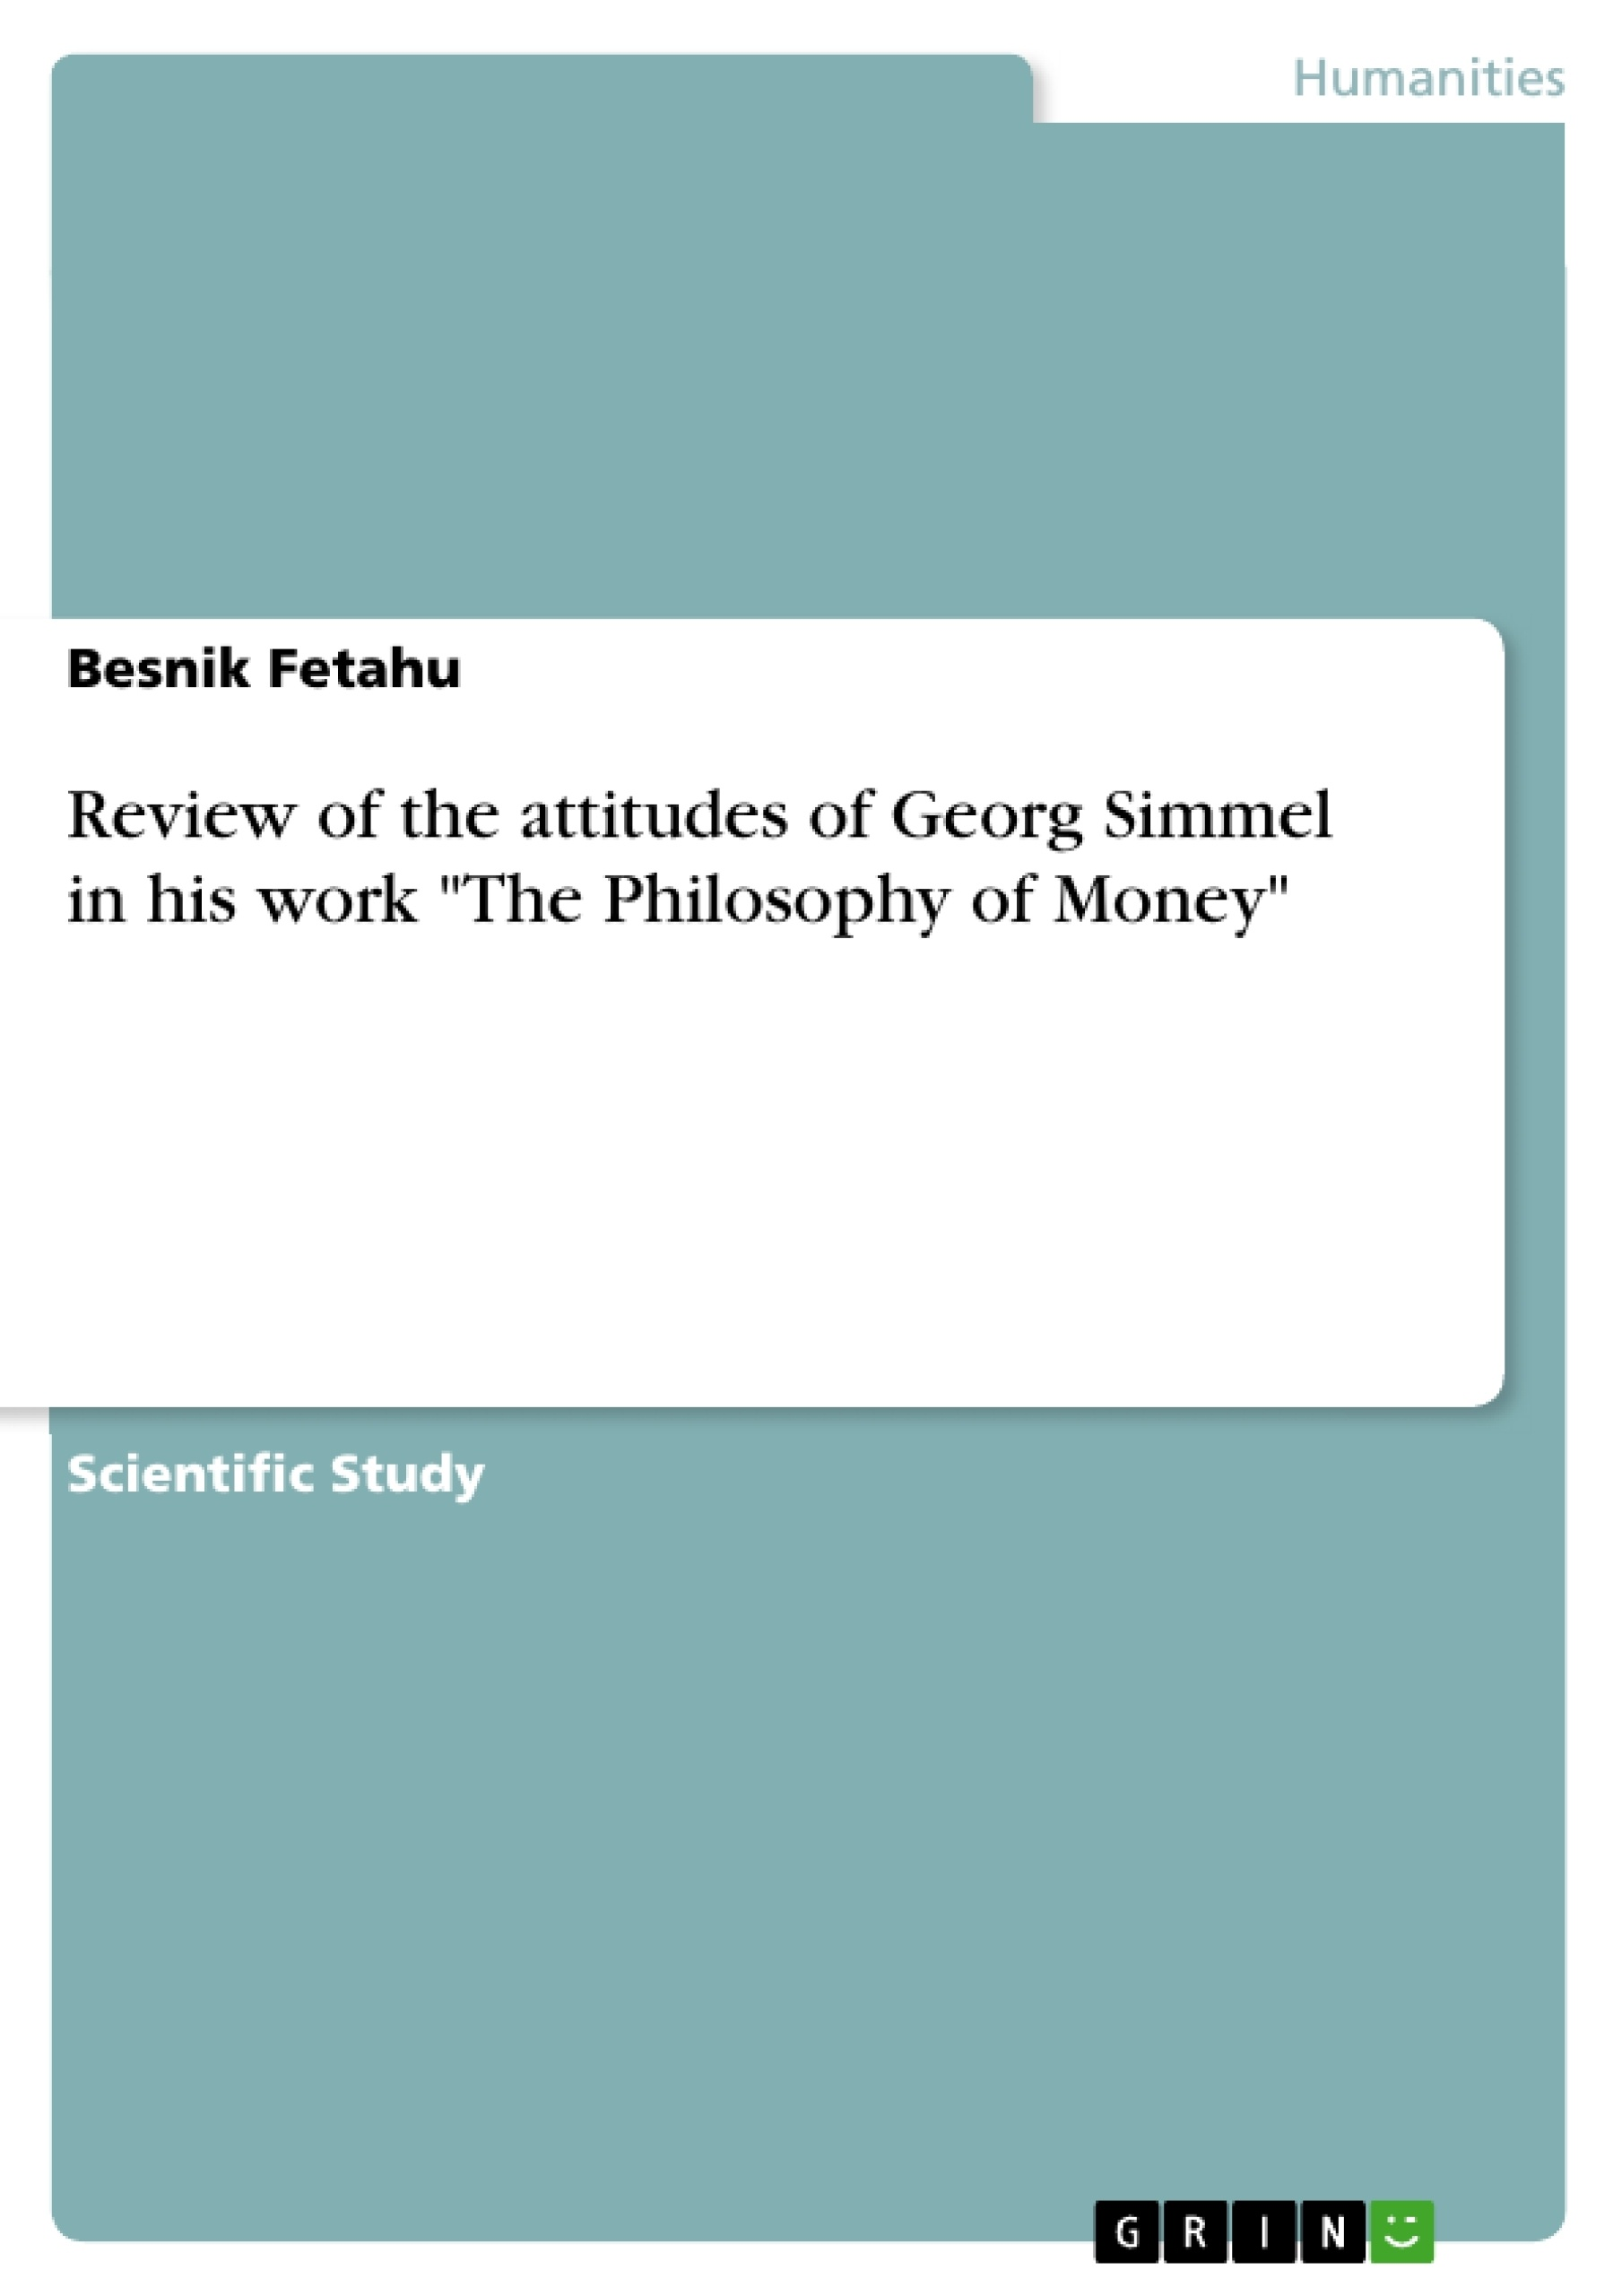 """Title: Review of the attitudes of Georg Simmel in his work """"The Philosophy of Money"""""""